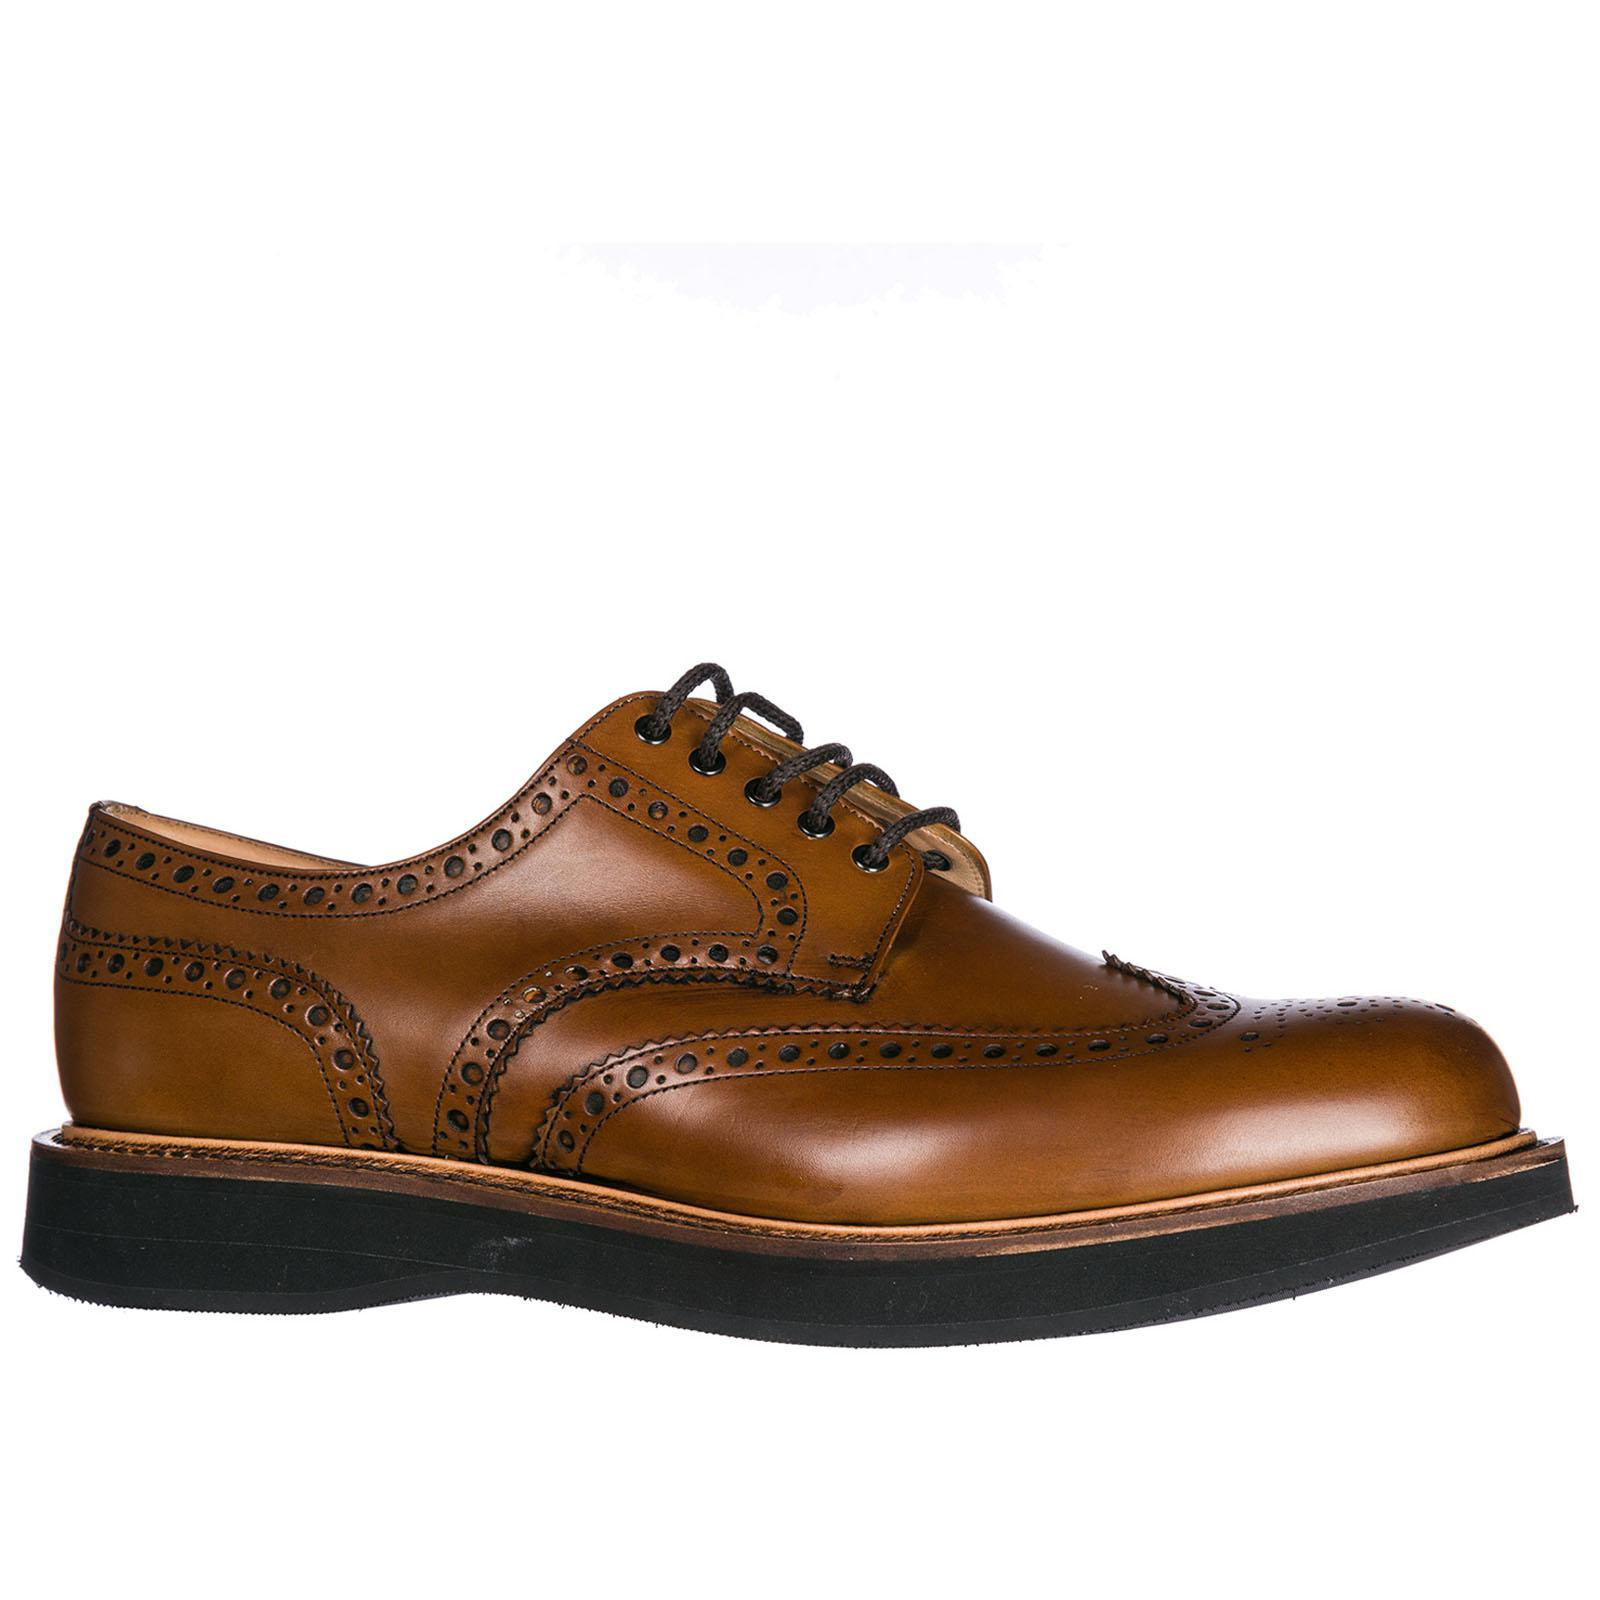 ebe6b167fa0a churchs-Chestnut-Classic-Leather-Lace-Up-Laced-Formal-Shoes-Tewin-Derby.jpeg